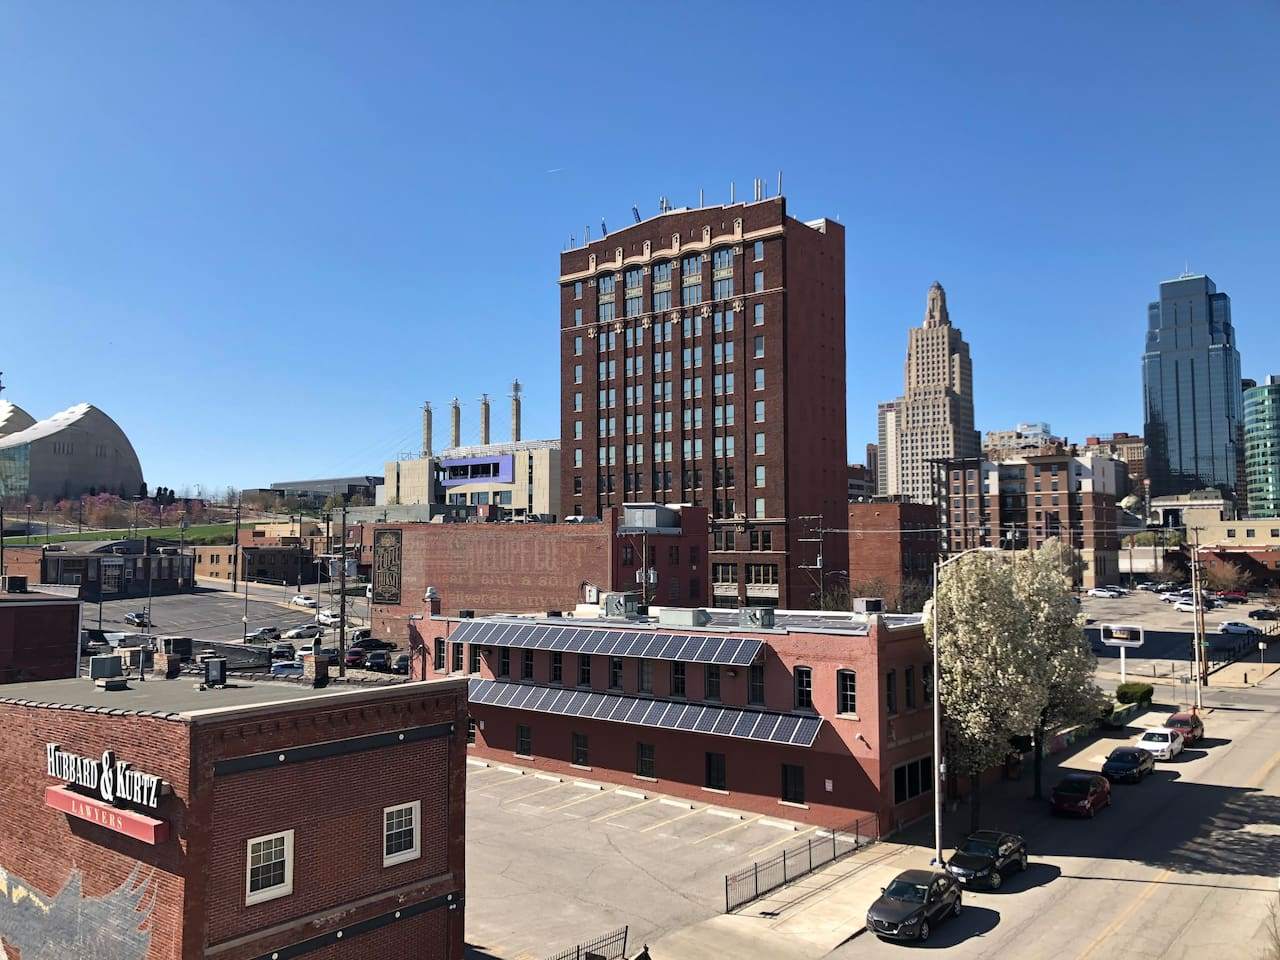 Spring is finally here! Best location for checking out this fun, walkable neighborhood! It is full of foodie delights, craft breweries and distilleries, jazz music, and street car access to downtown!